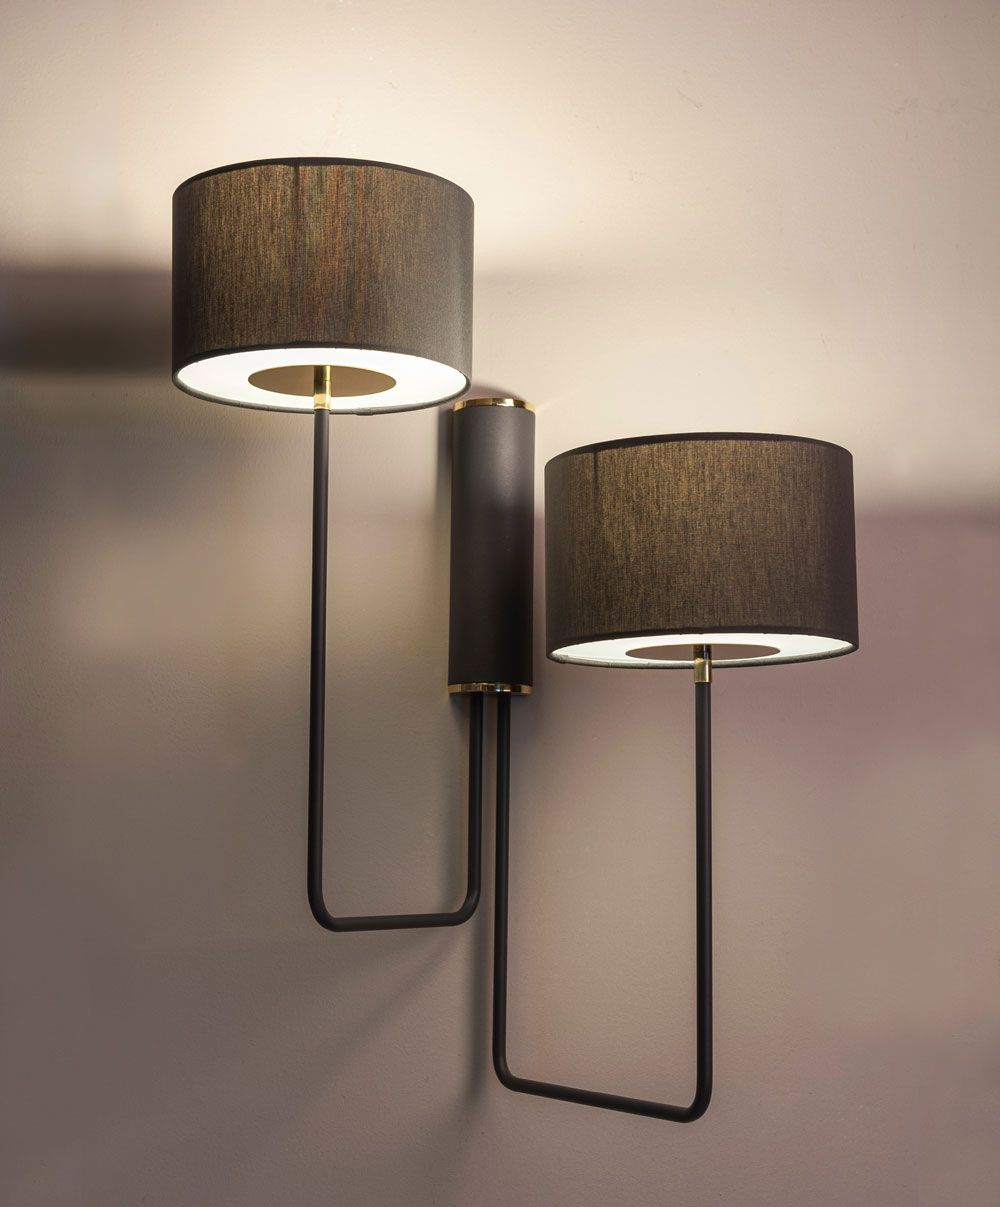 Best 25 Contemporary wall lights ideas on Pinterest